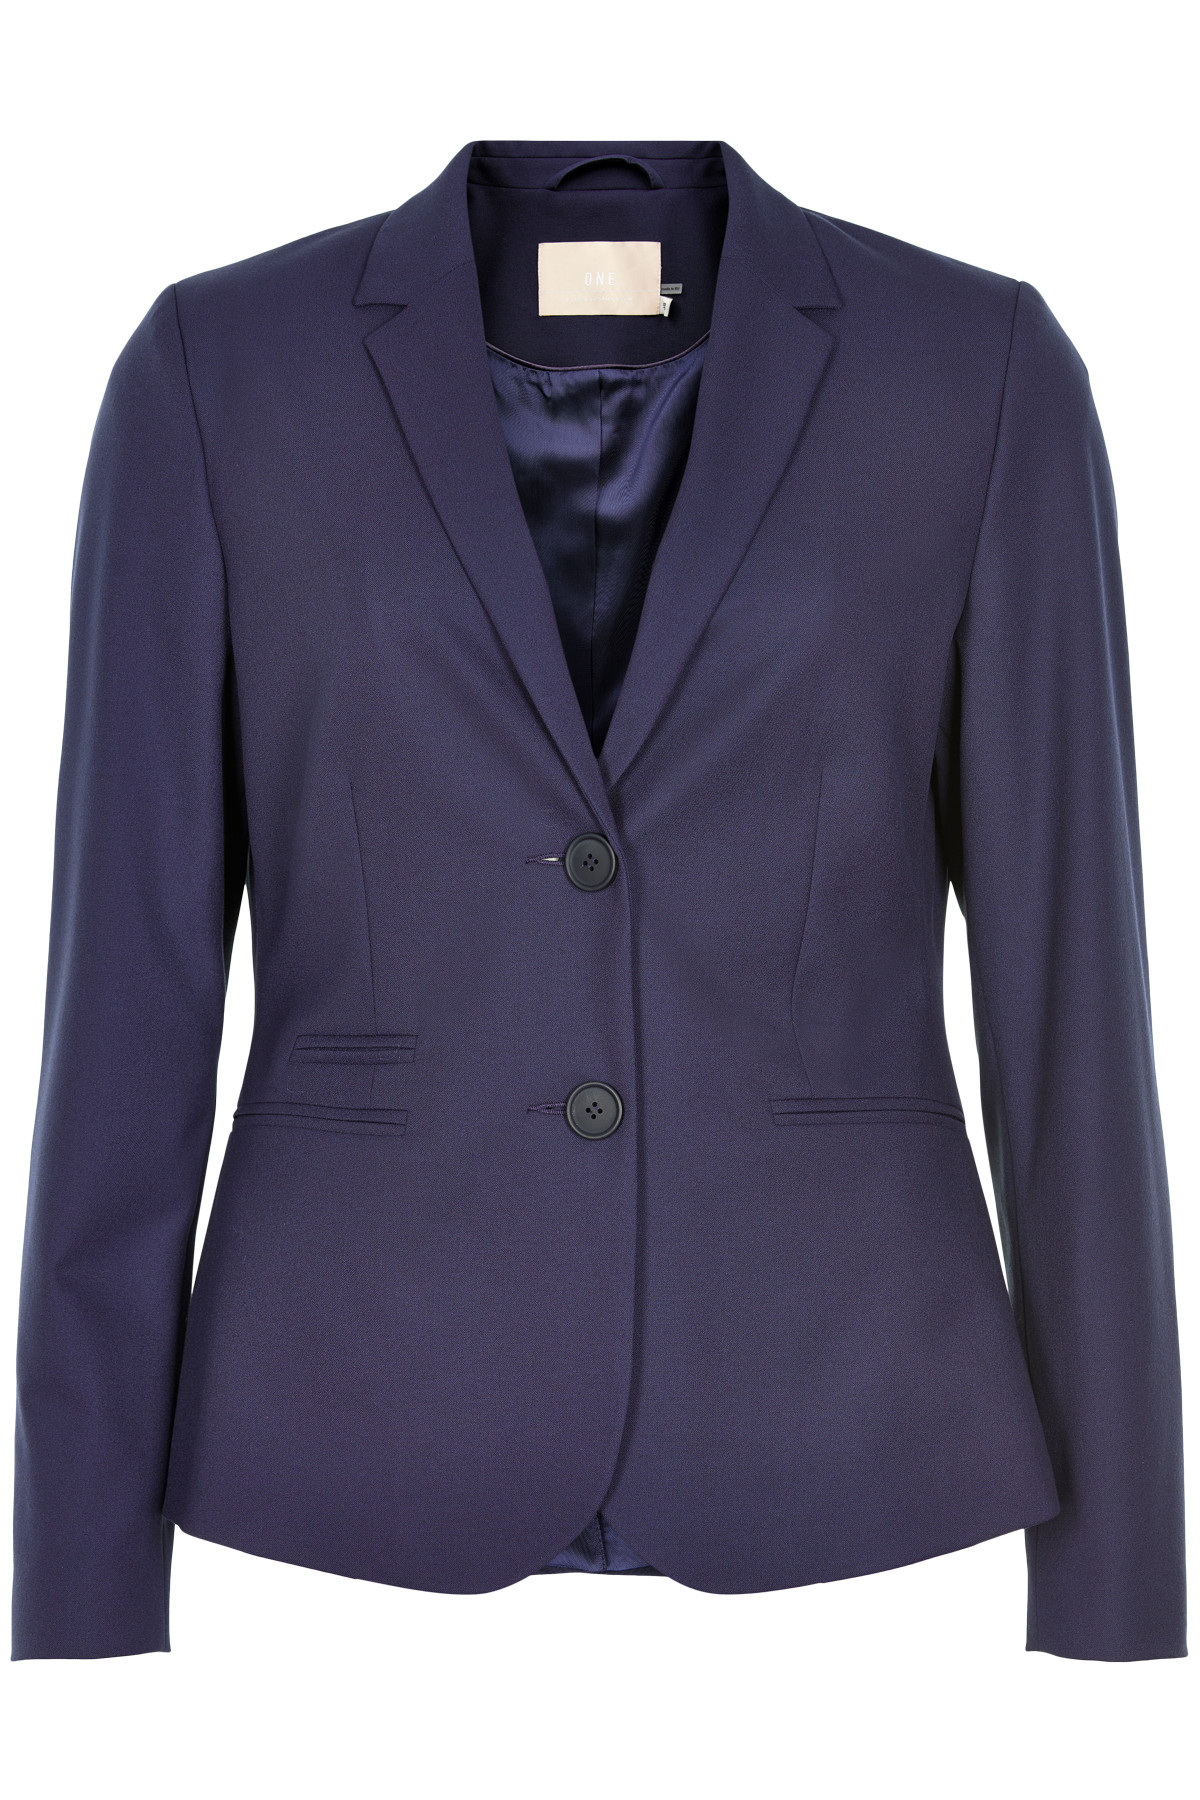 Image of   KAREN BY SIMONSEN SYDNEY BLAZER 10102089 (Dark Blue 40520, 44)